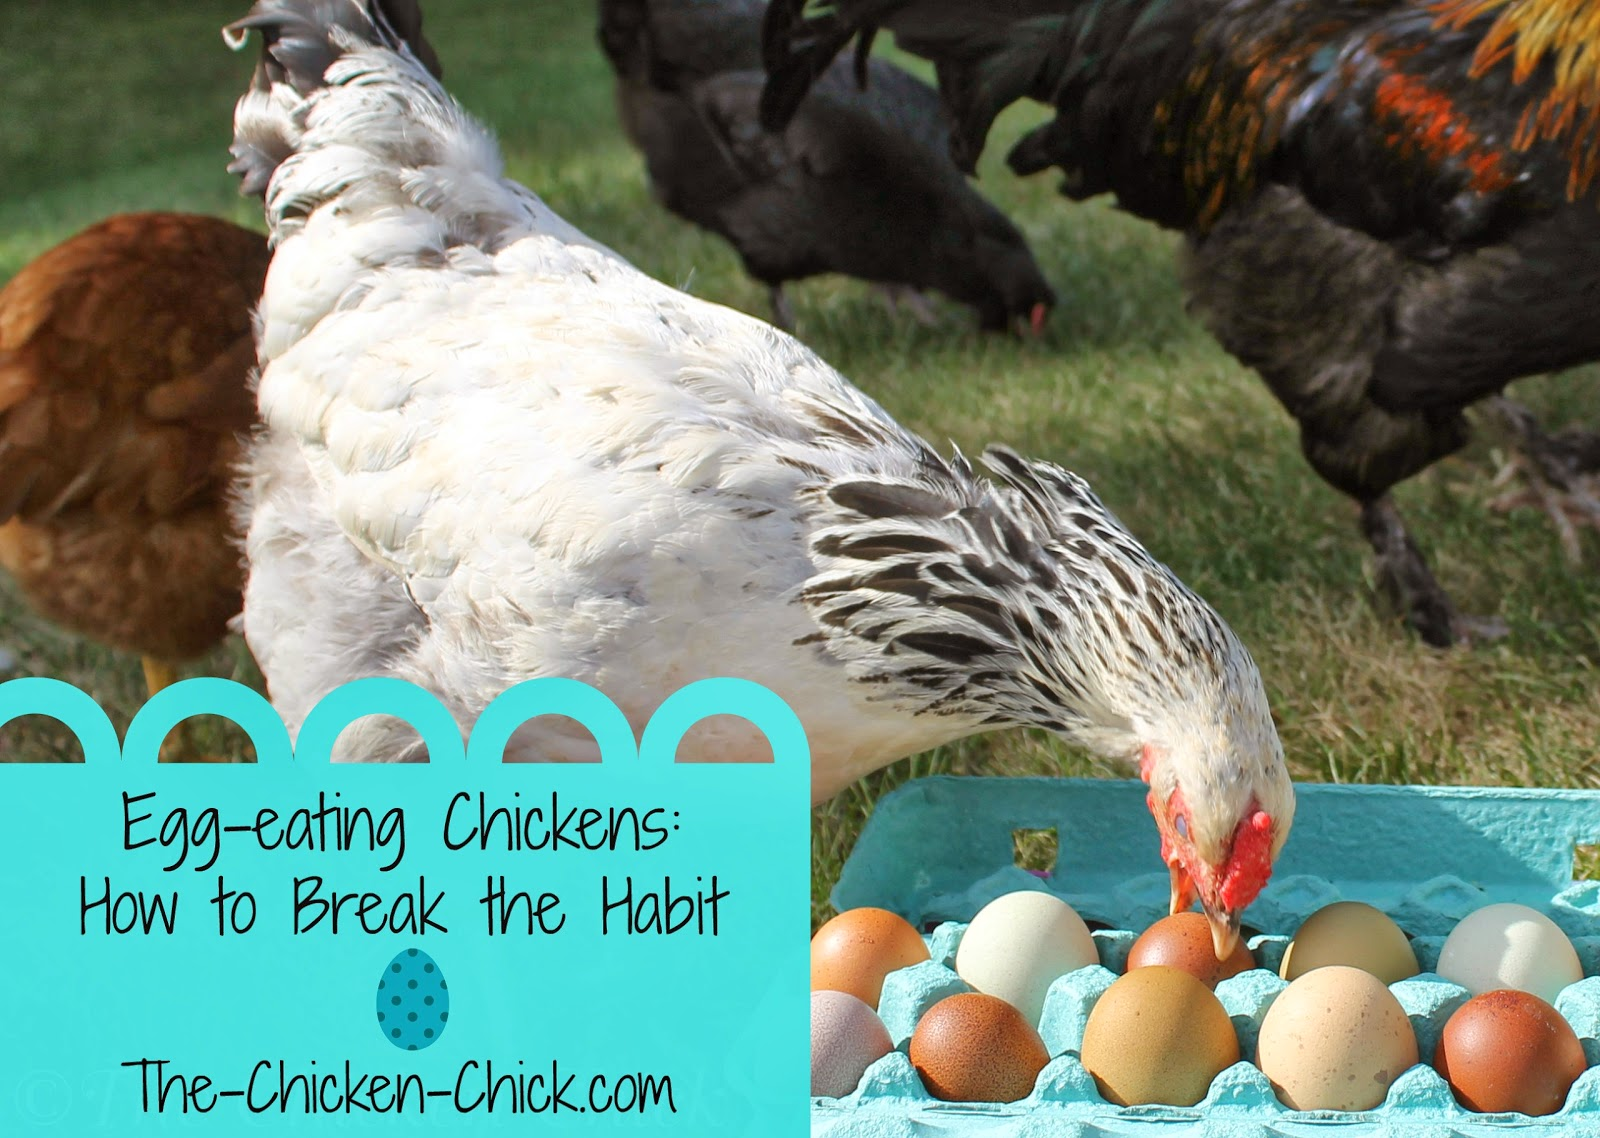 Cracked eggs are an enticement to bored chickens and egg-eating is a tough habit to break.